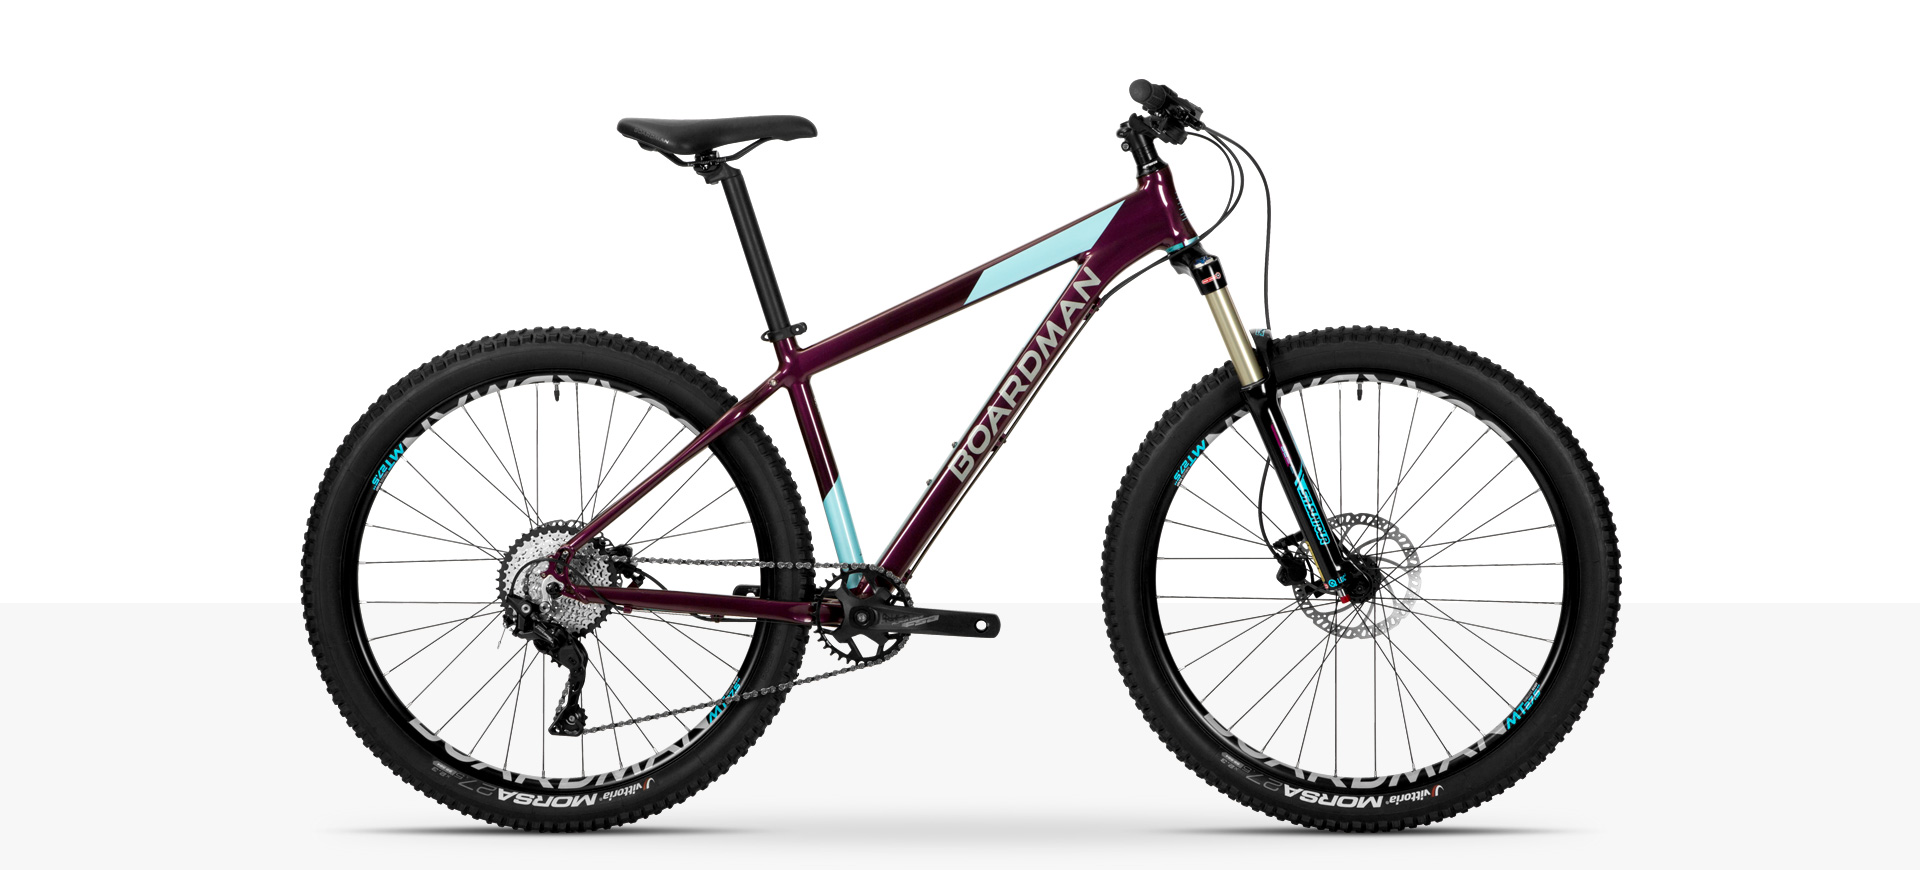 Boardman MHT 8.6 Womens' Hardtail Mountain Bike in Aubergine